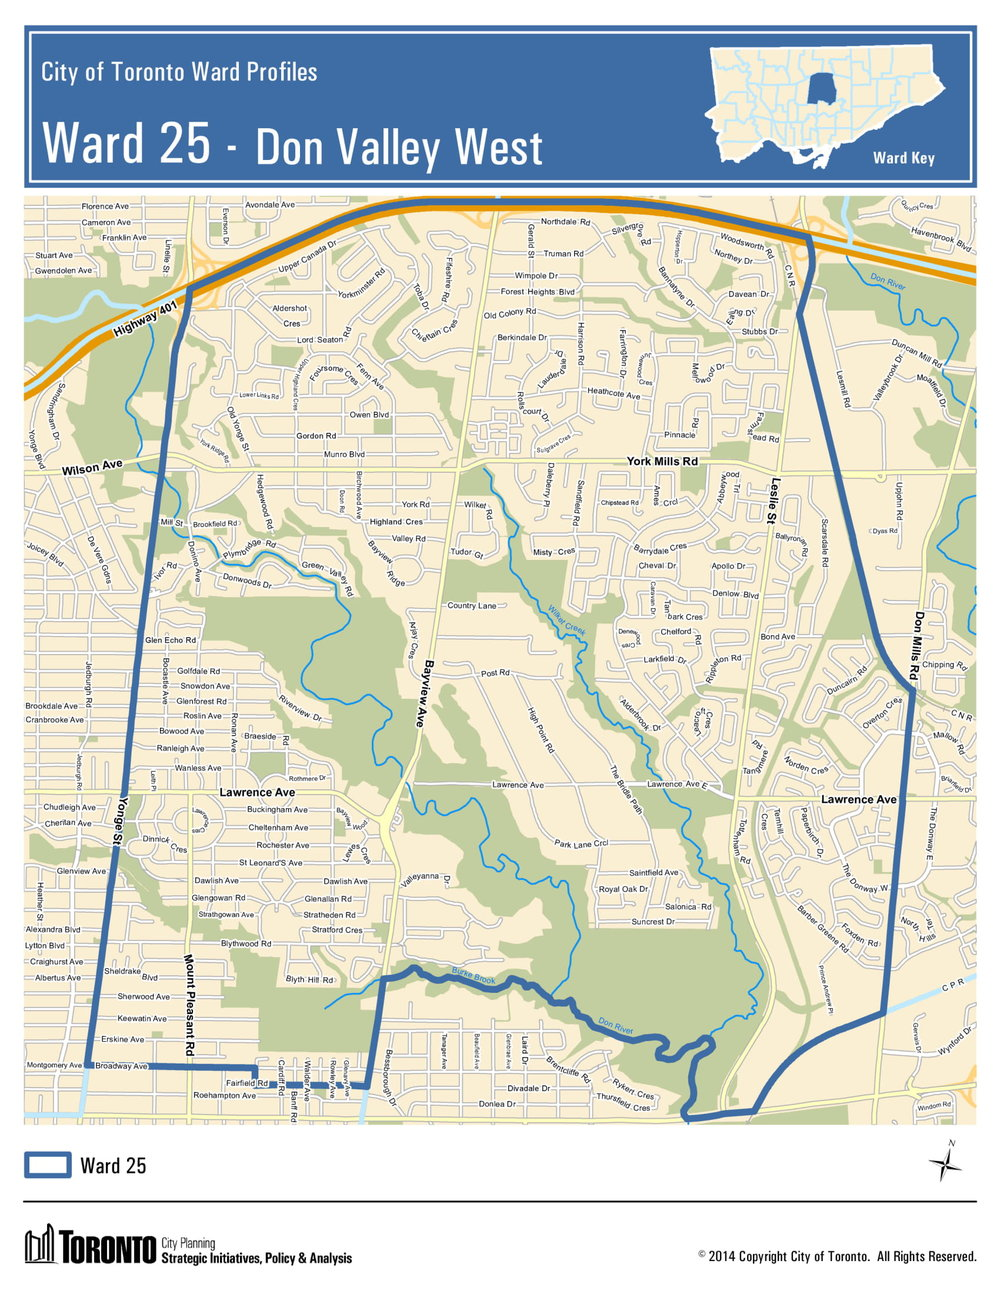 The current Ward 25 boundaries that will no longer be in place following the October 22 Municipal Election.